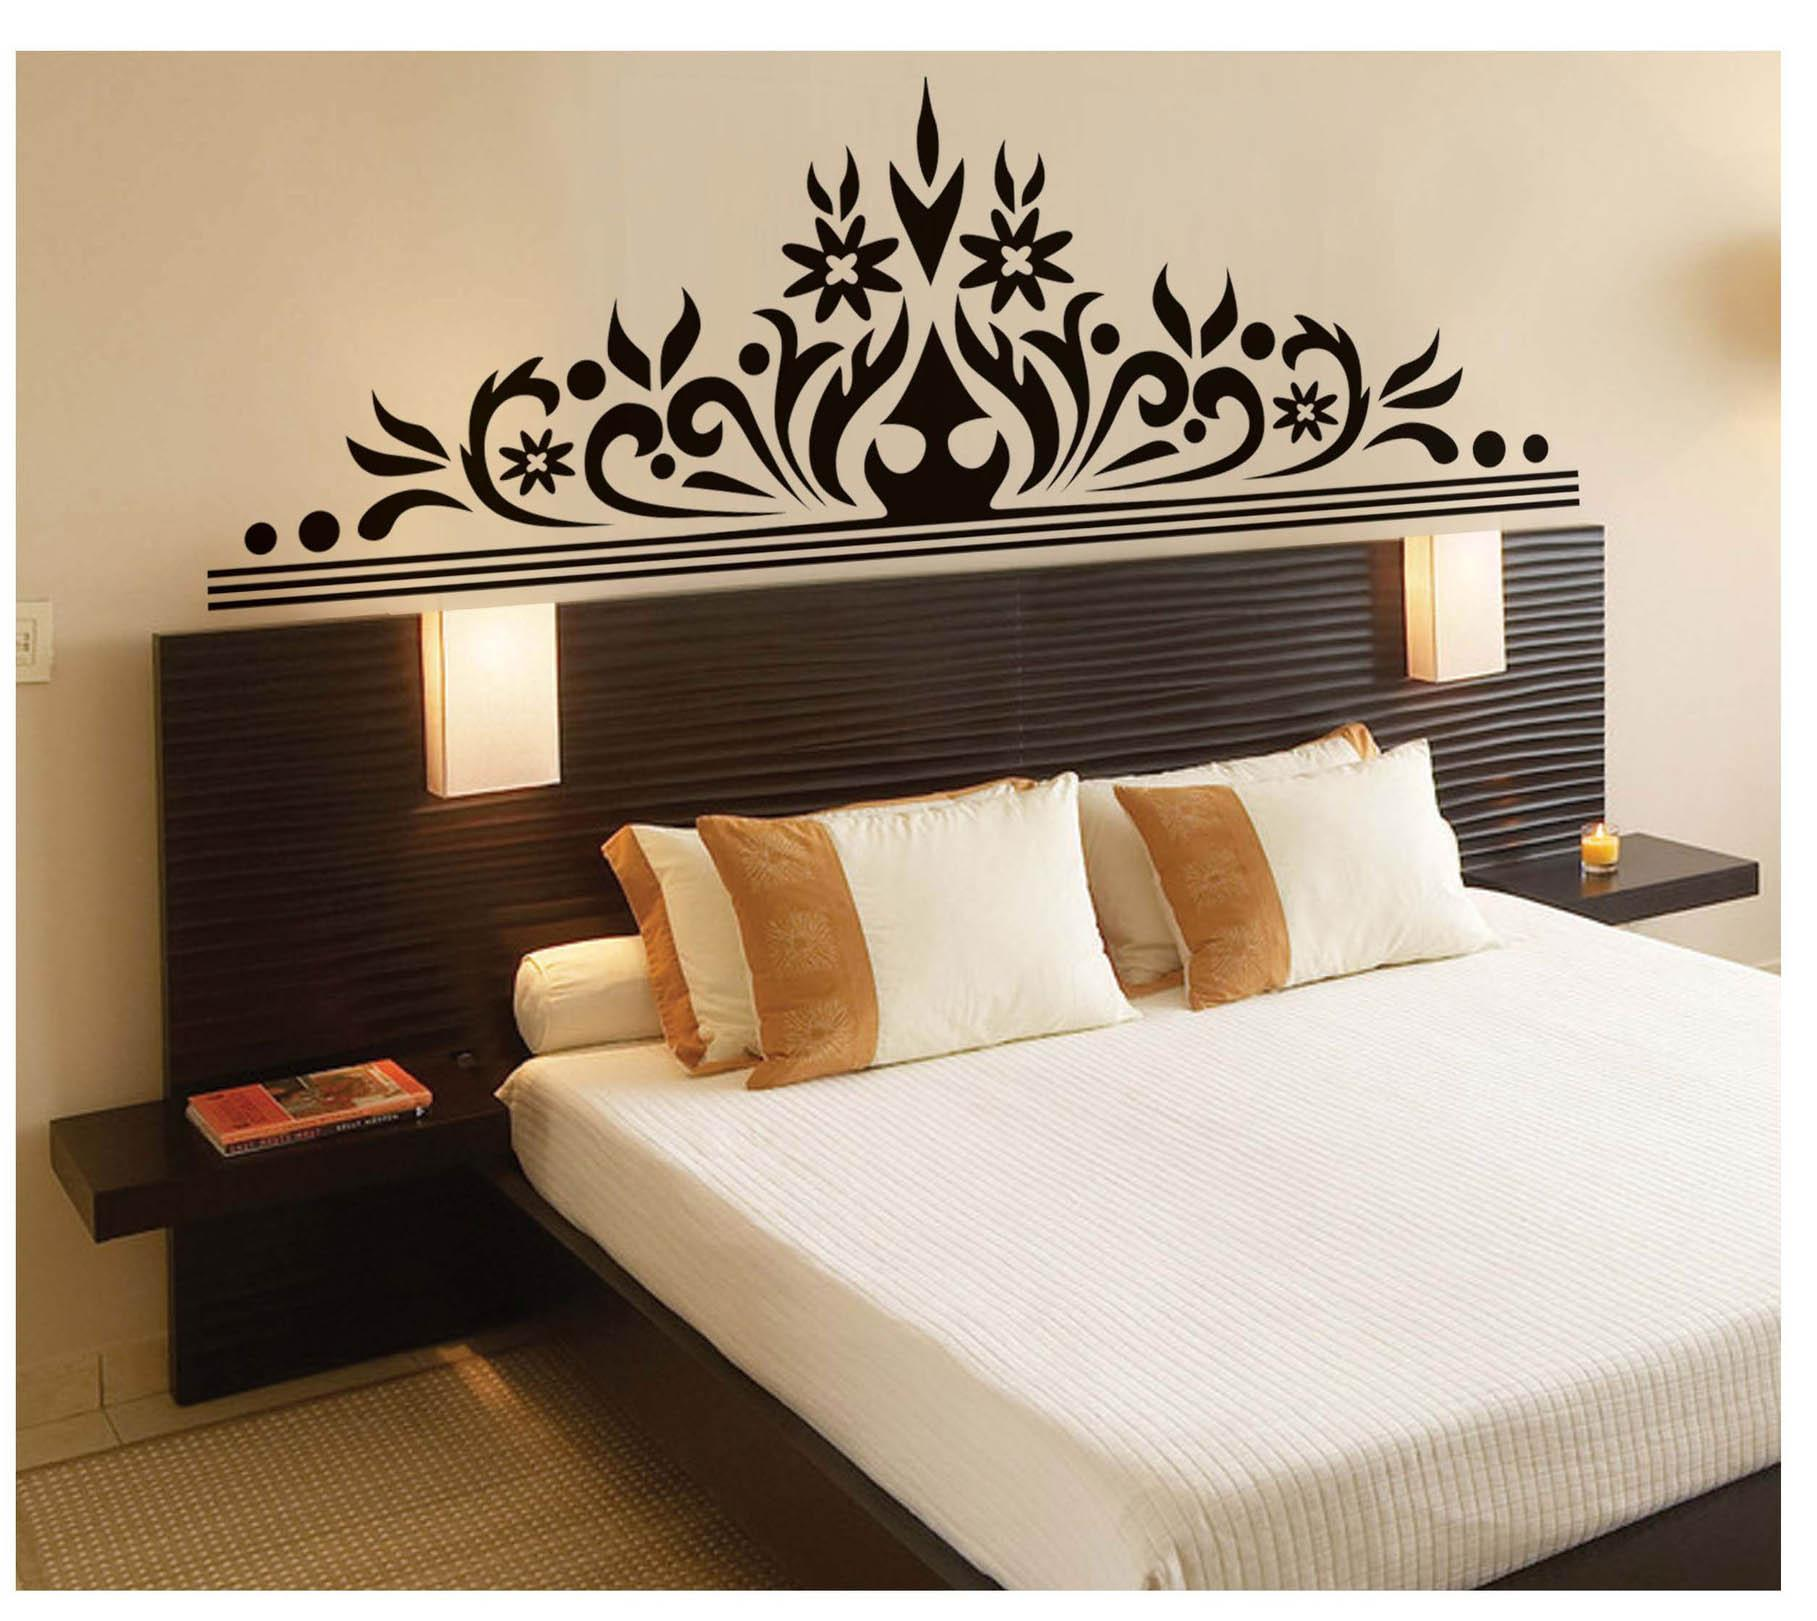 Stickers For Wall Decor bedroom wall art decal sticker headboard wall decoration mural